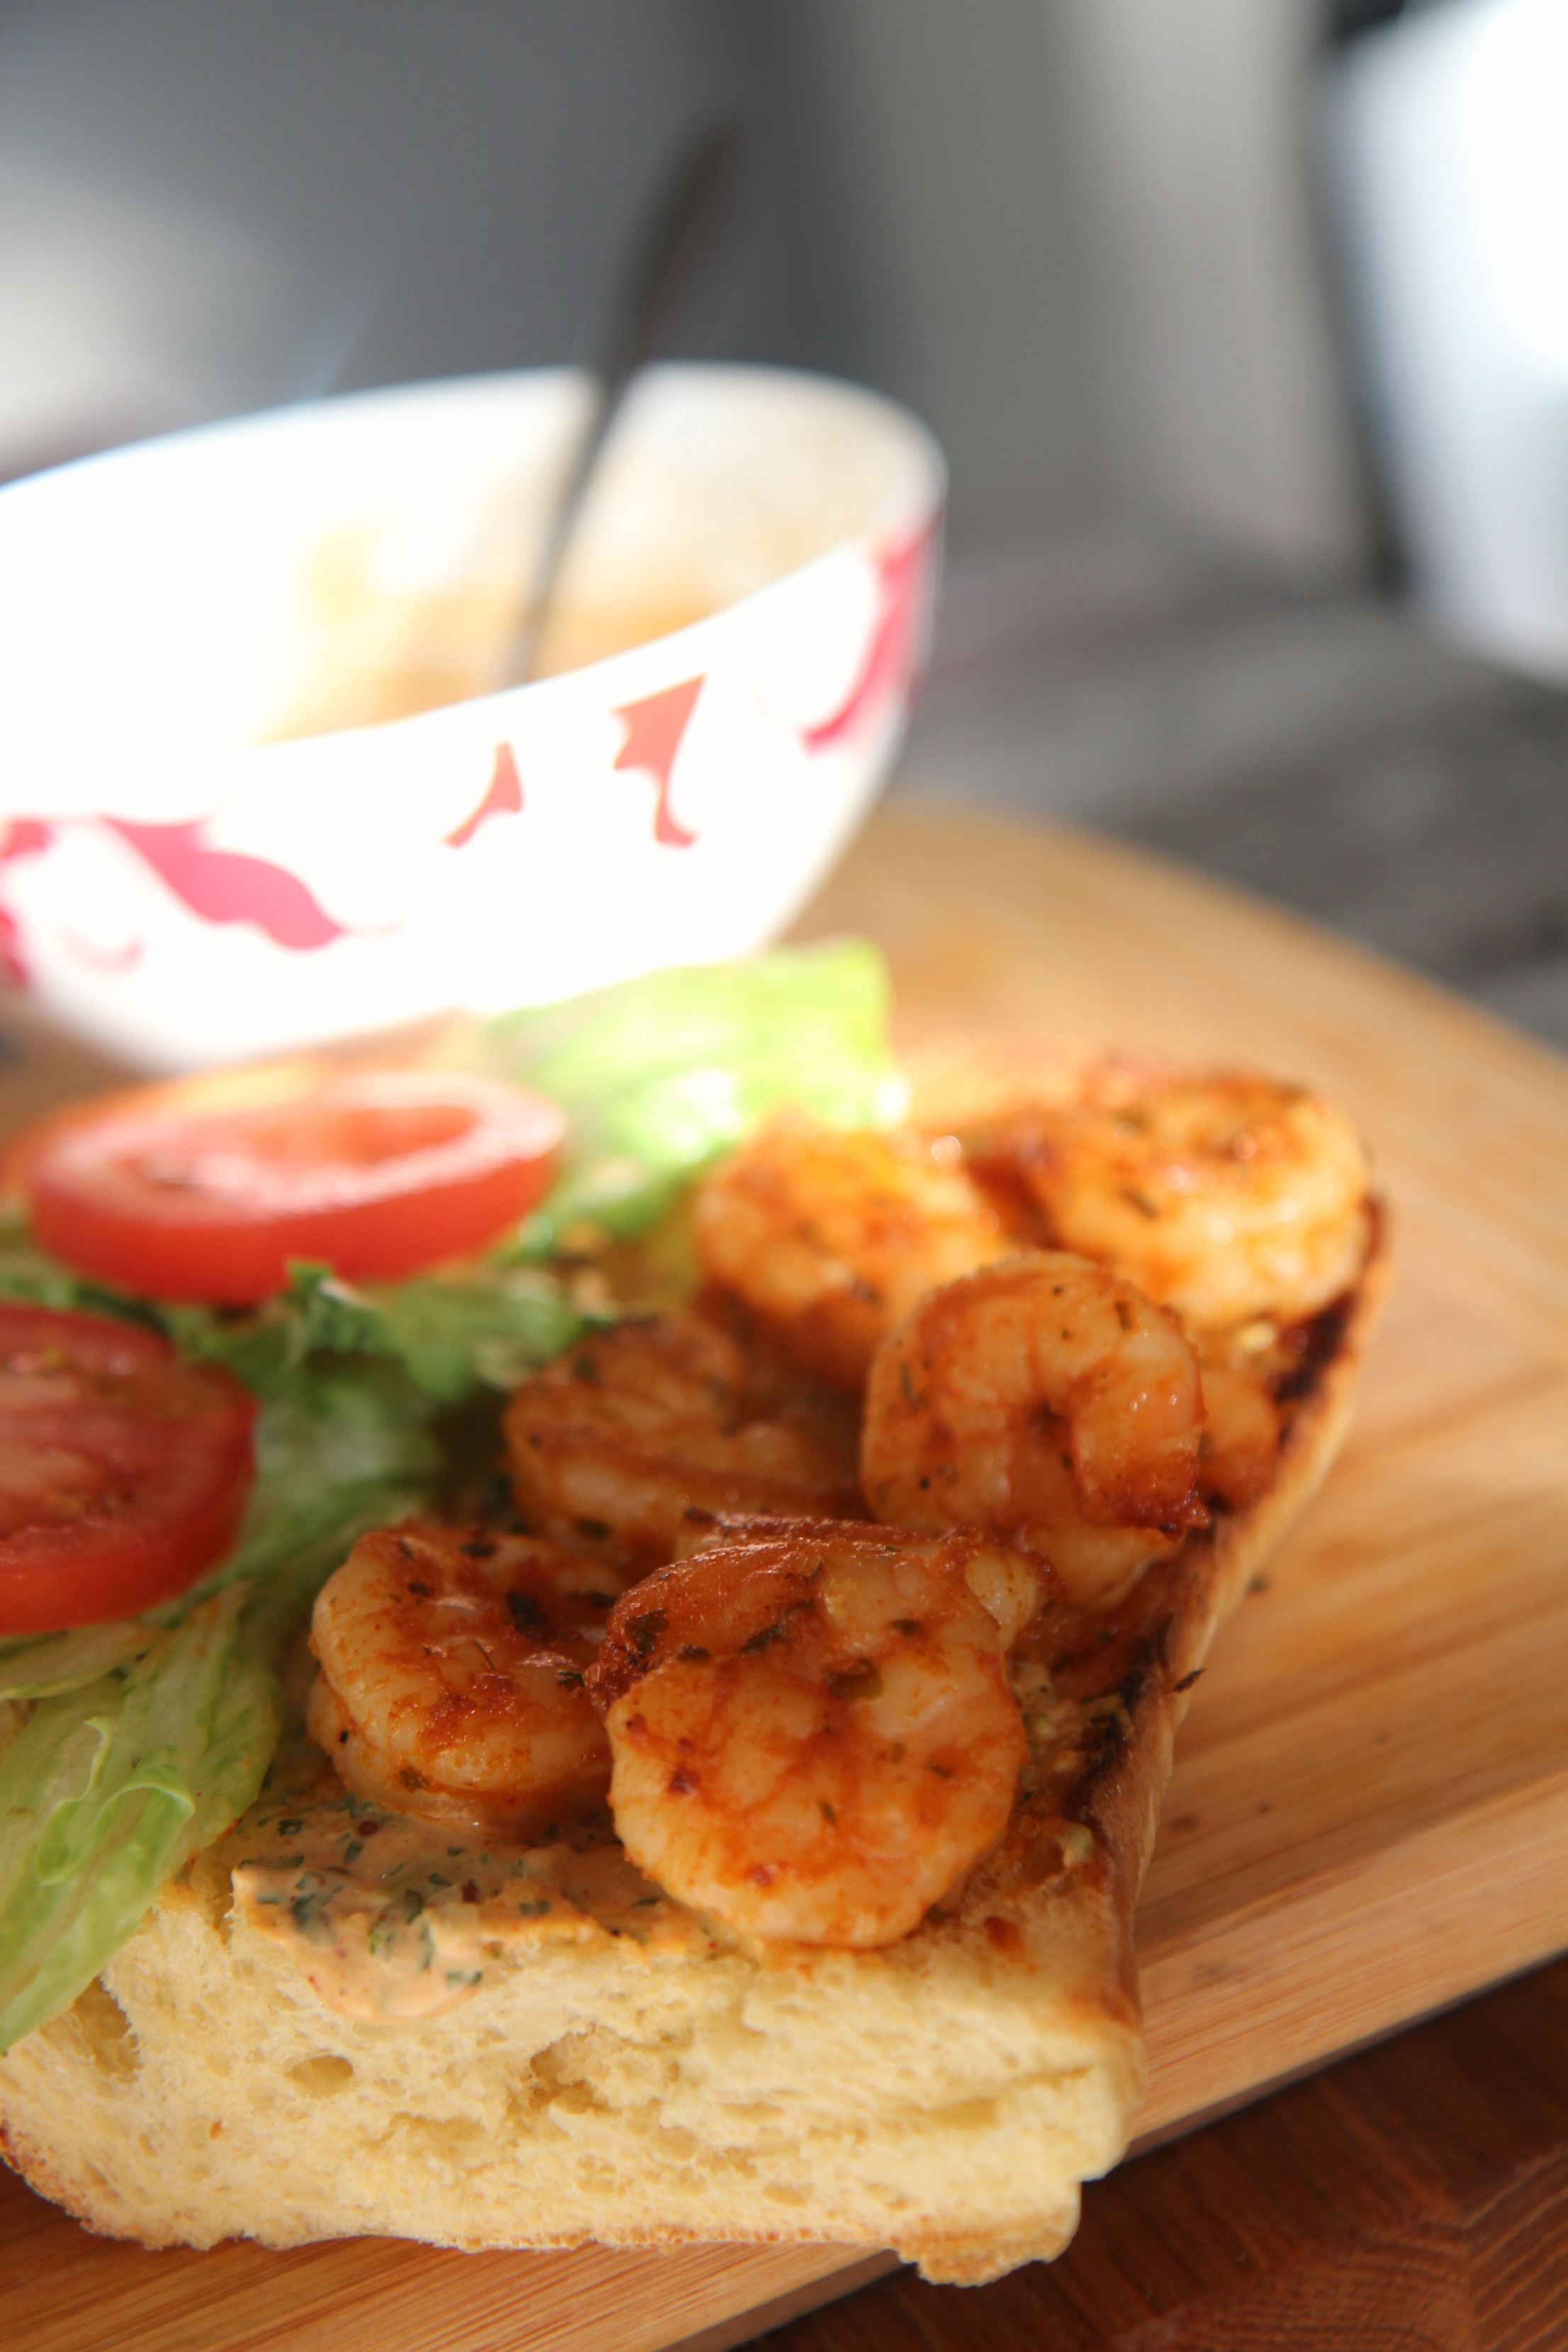 The shrimp are the star of the show.